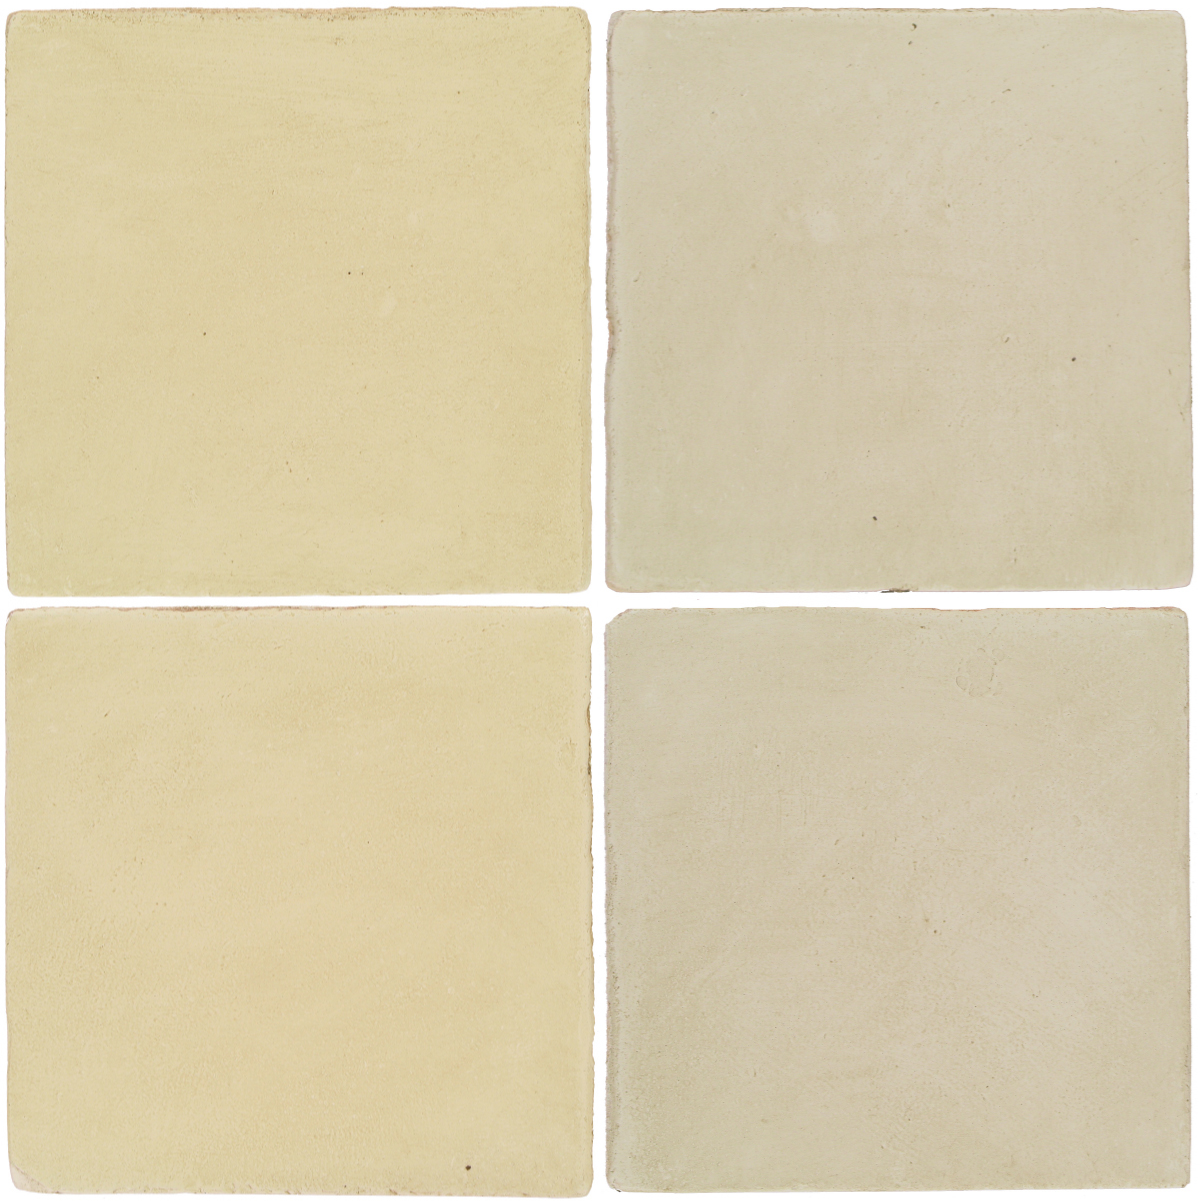 Pedralbes Antique Terracotta  2 Color Combinations  OHS-PGPW Pergamino White + OHS-PGLW Glacier White